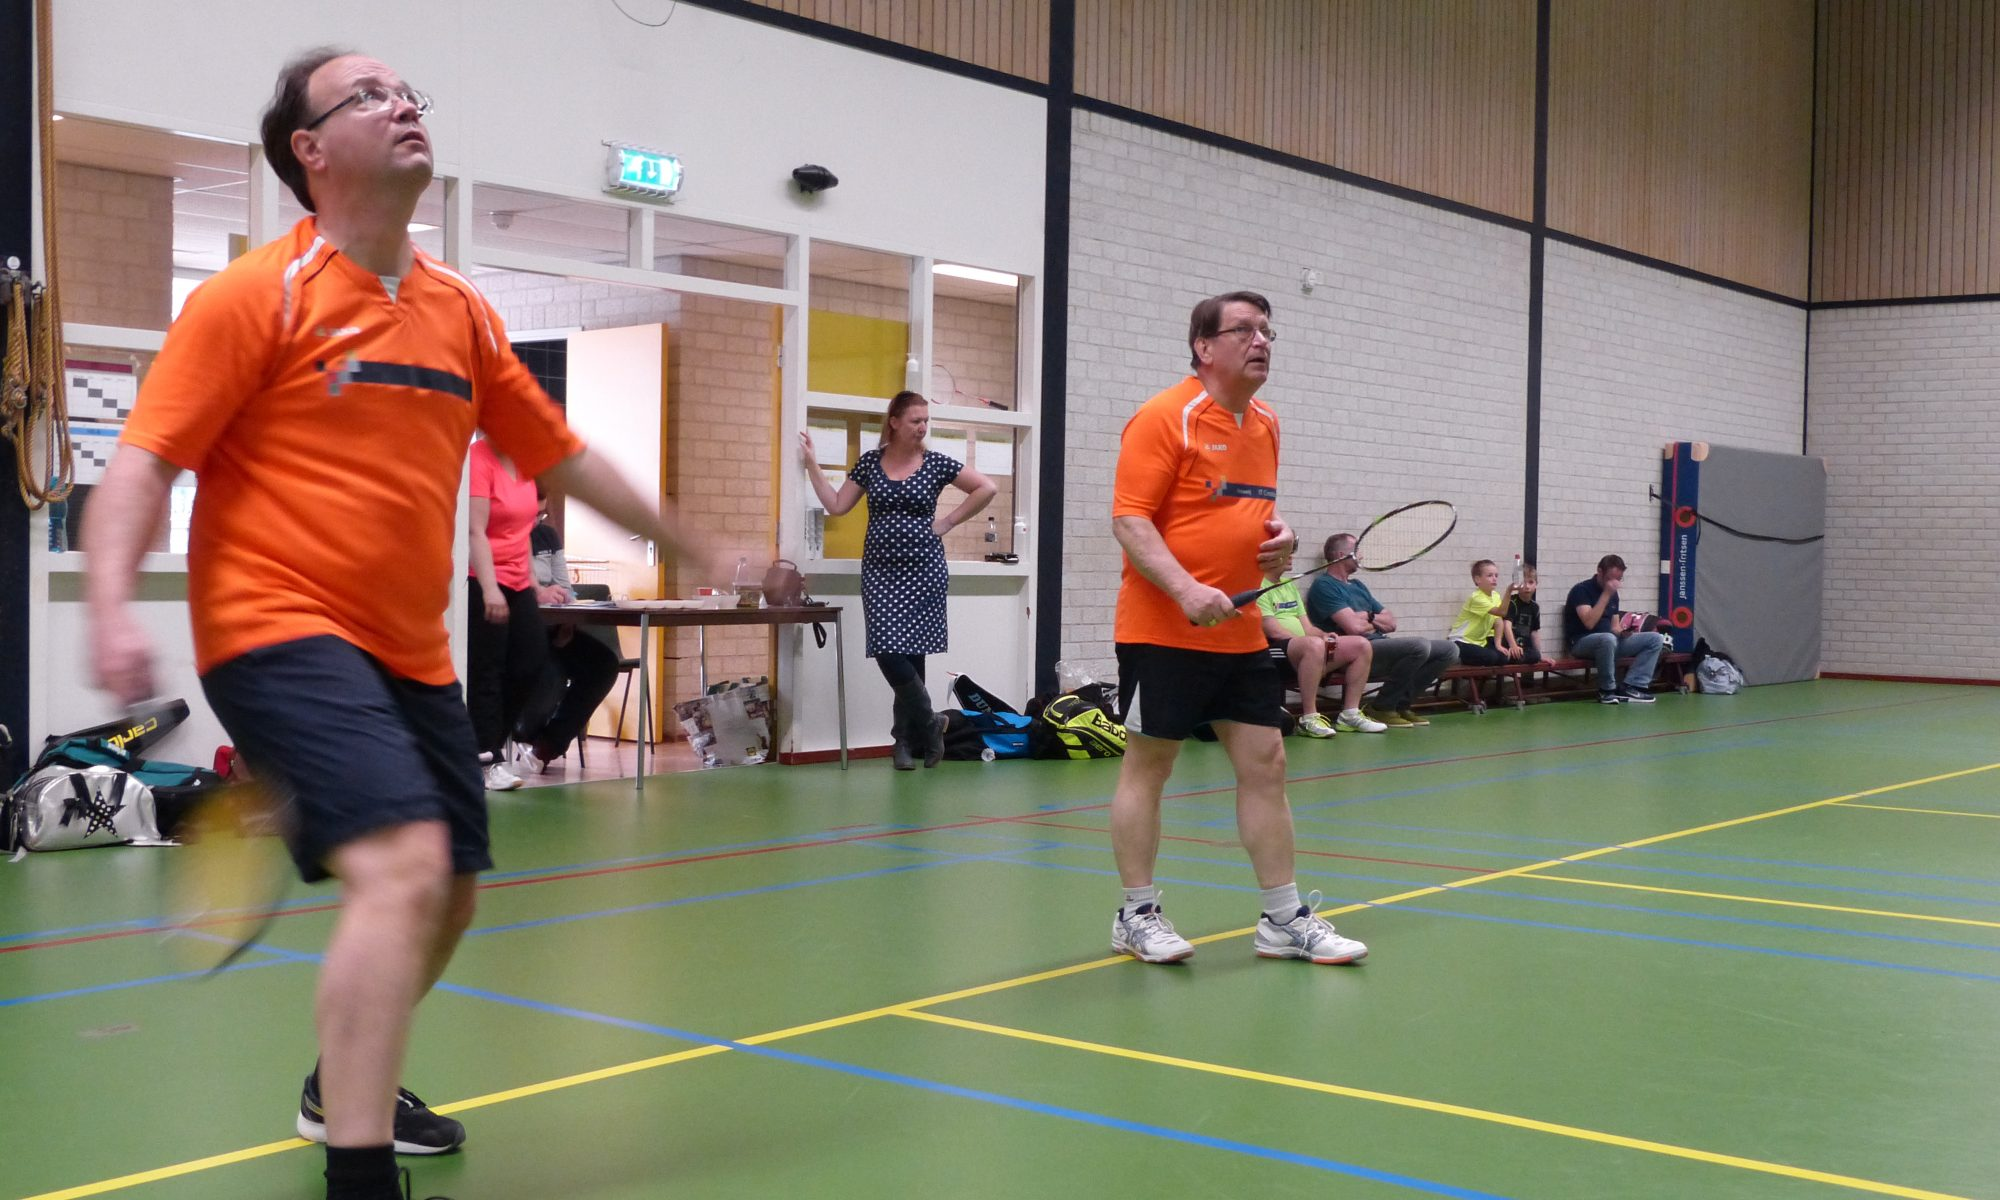 Badminton Club Op Dreef